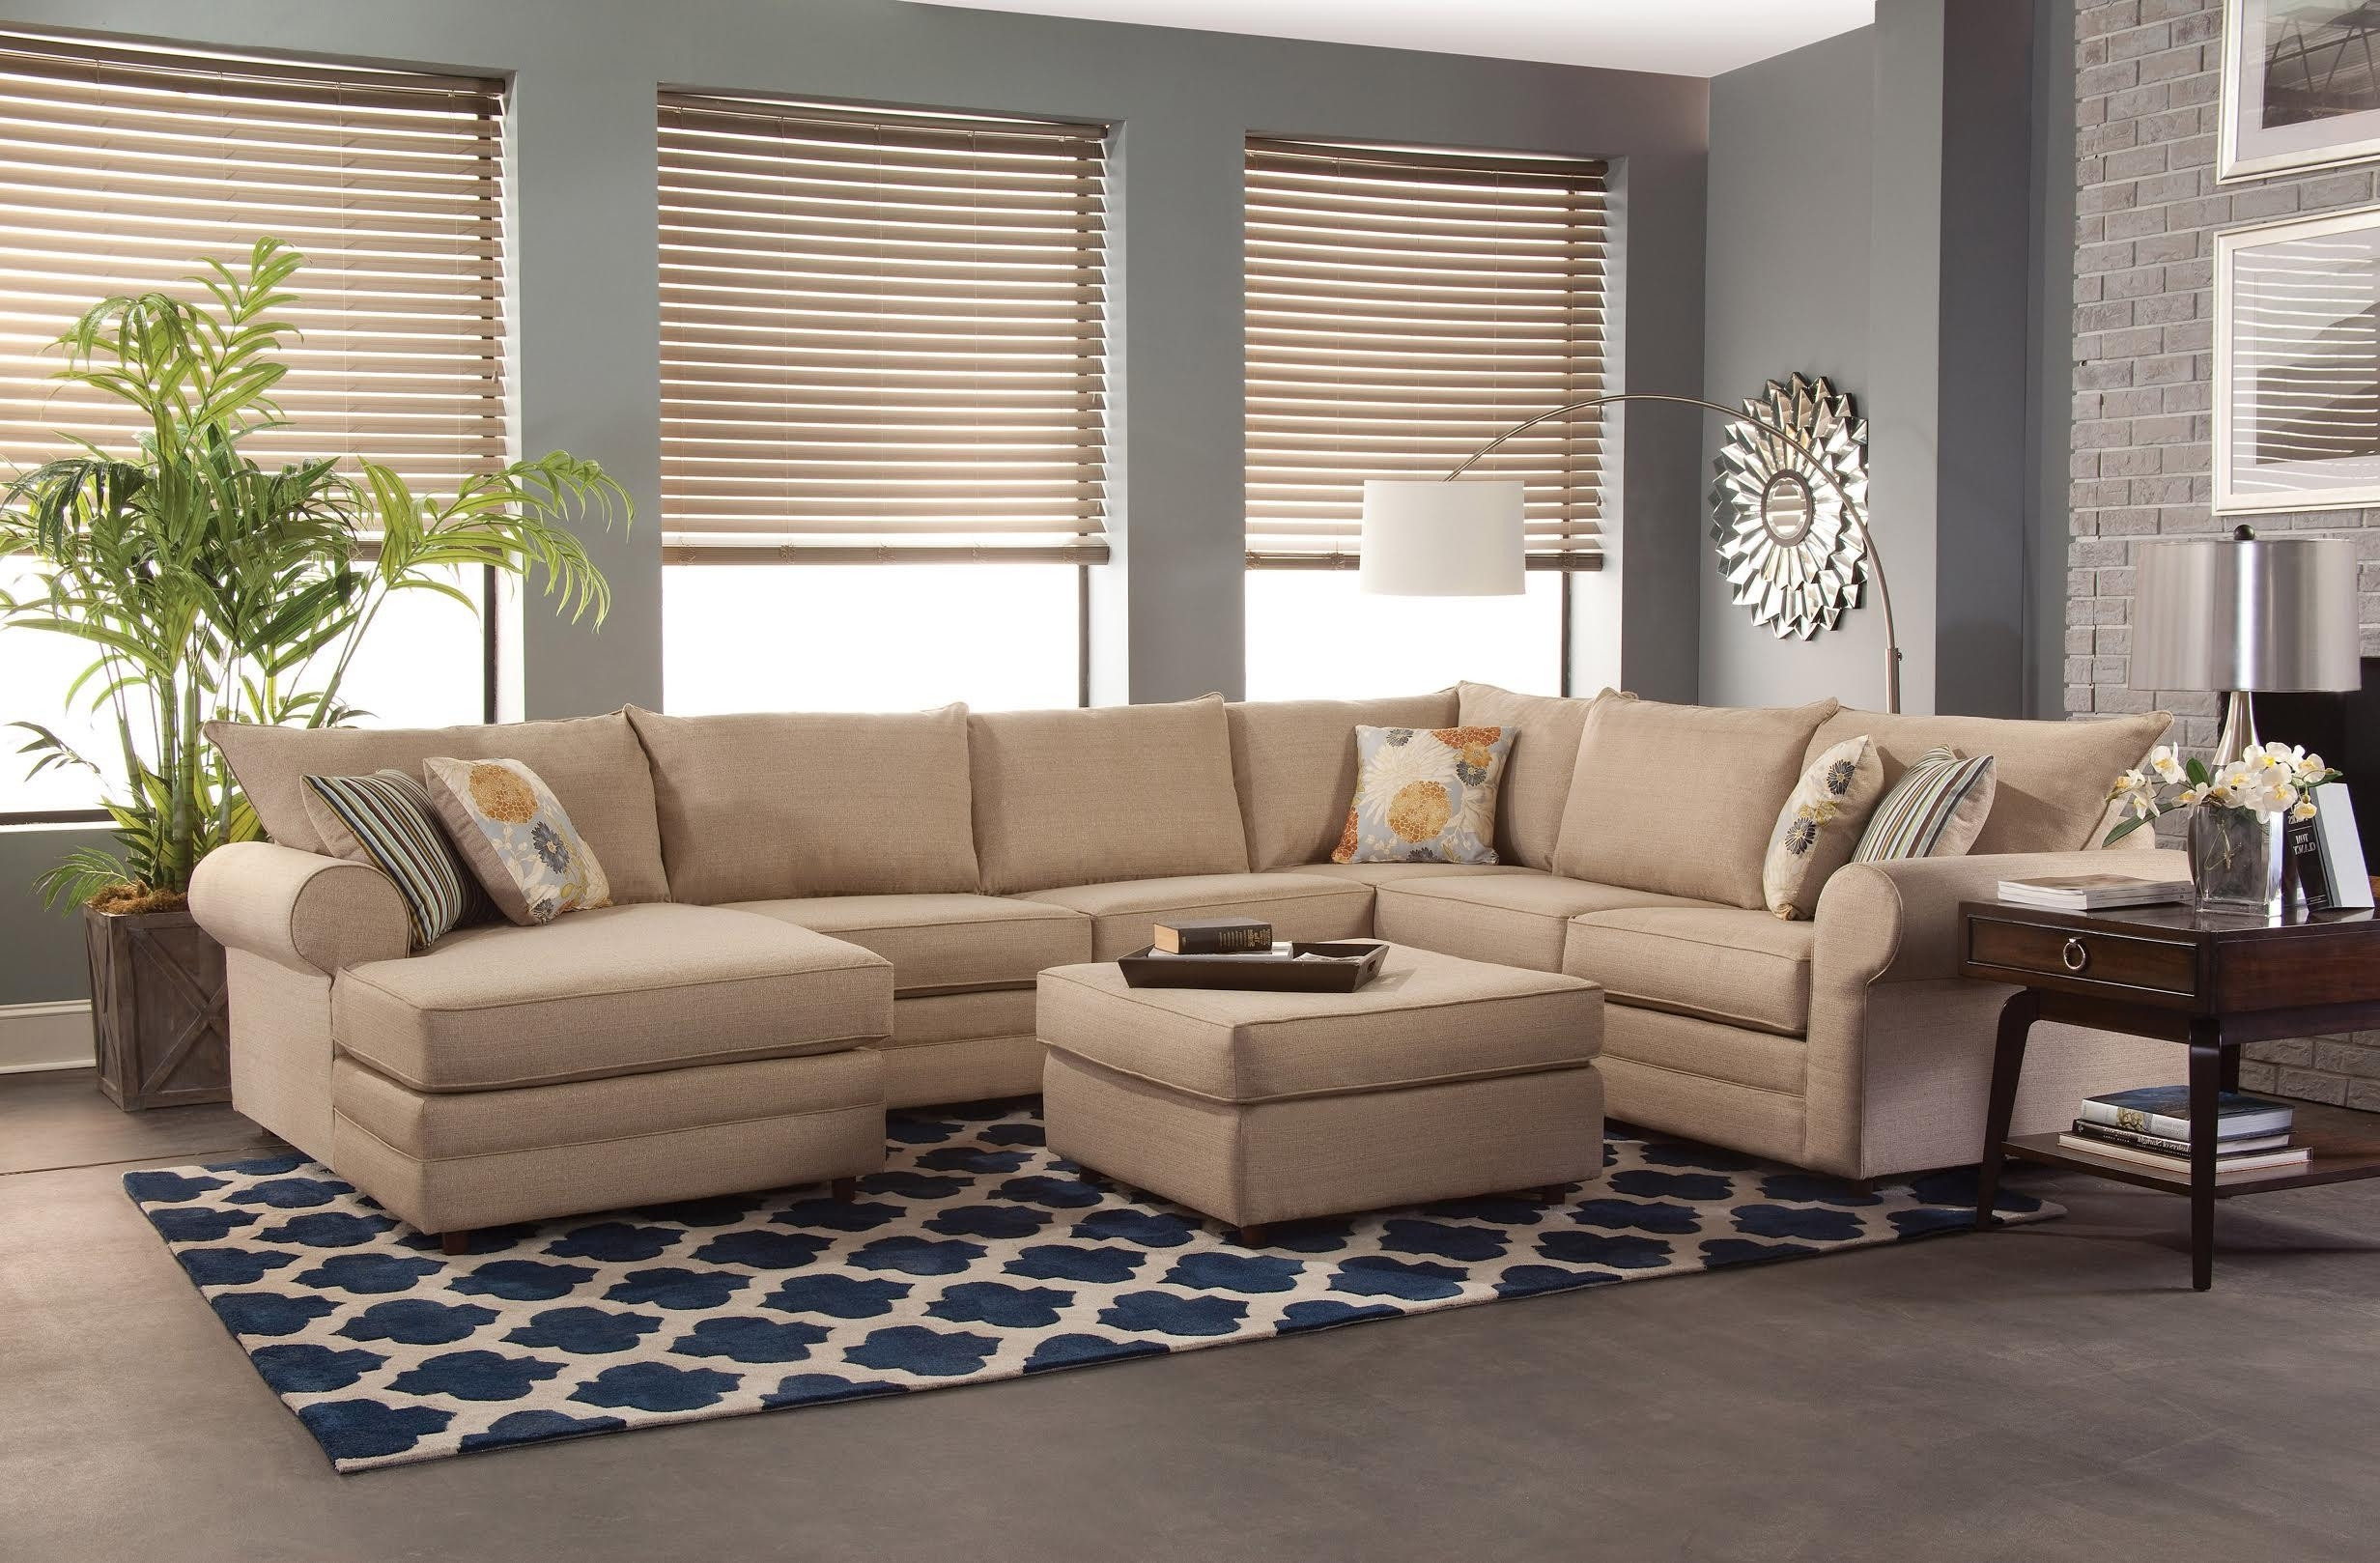 Maryland Sofas Intended For Most Up To Date Belfort Essentials Monticello Casual Sectional Sofa (View 9 of 15)